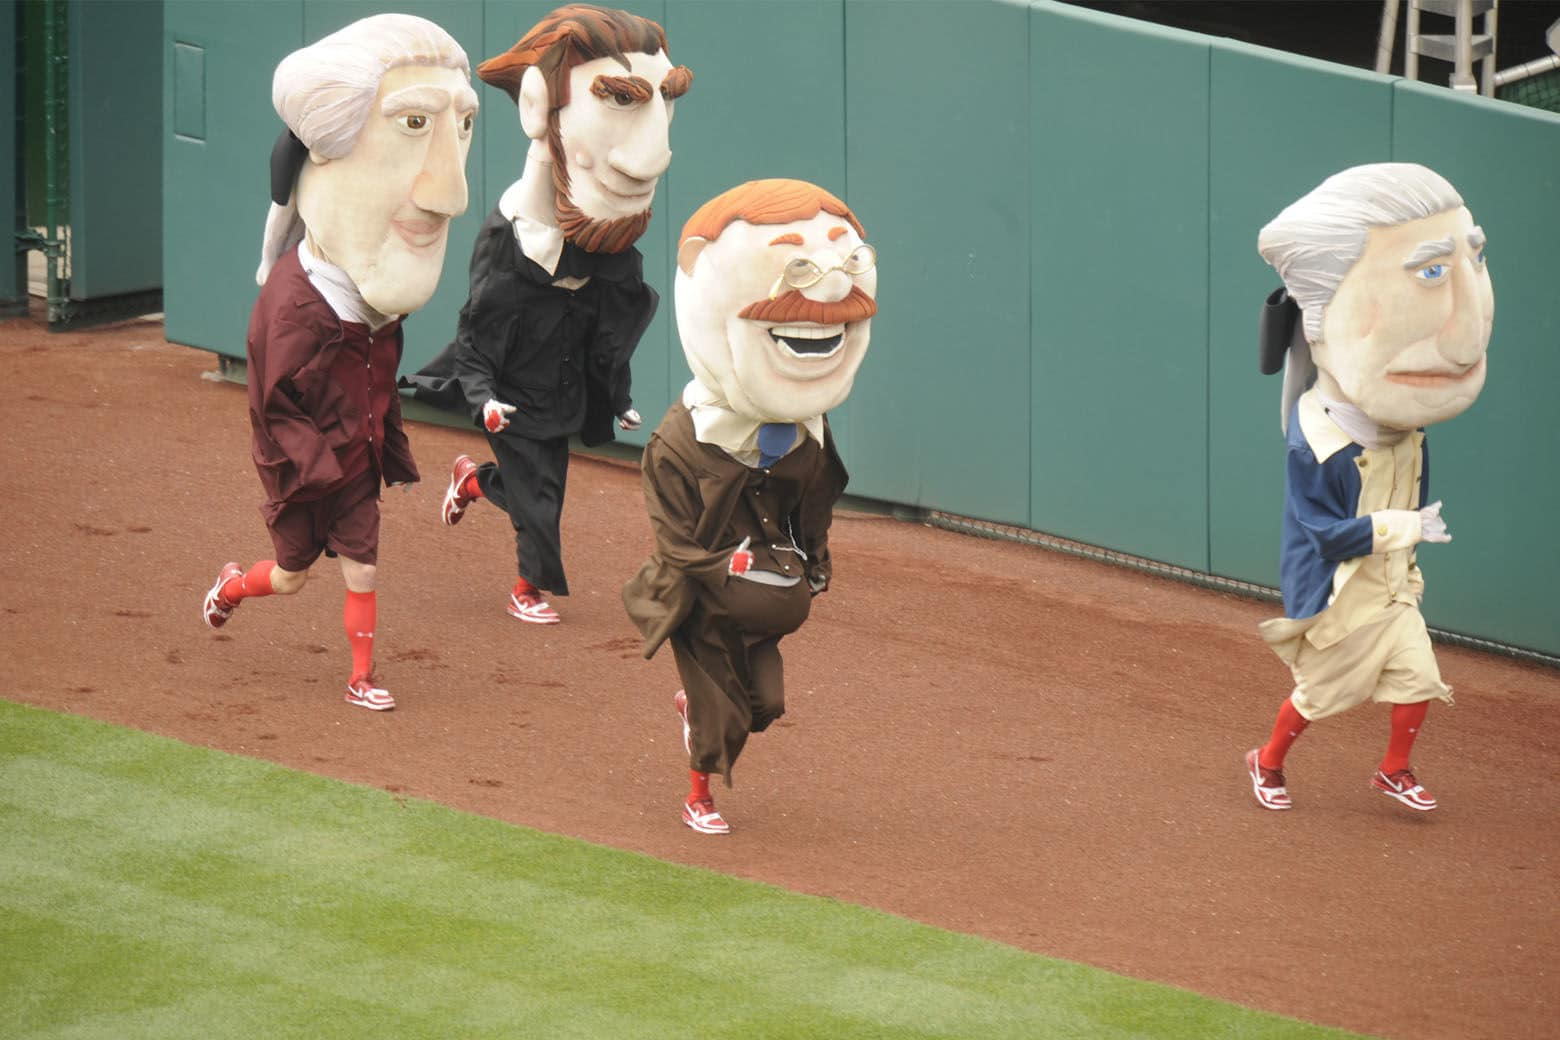 The presidential mascots, who have been a beloved part of the Nationals game-day experience since 2006, race during the fourth inning of every home game. (Courtesy the Nationals)